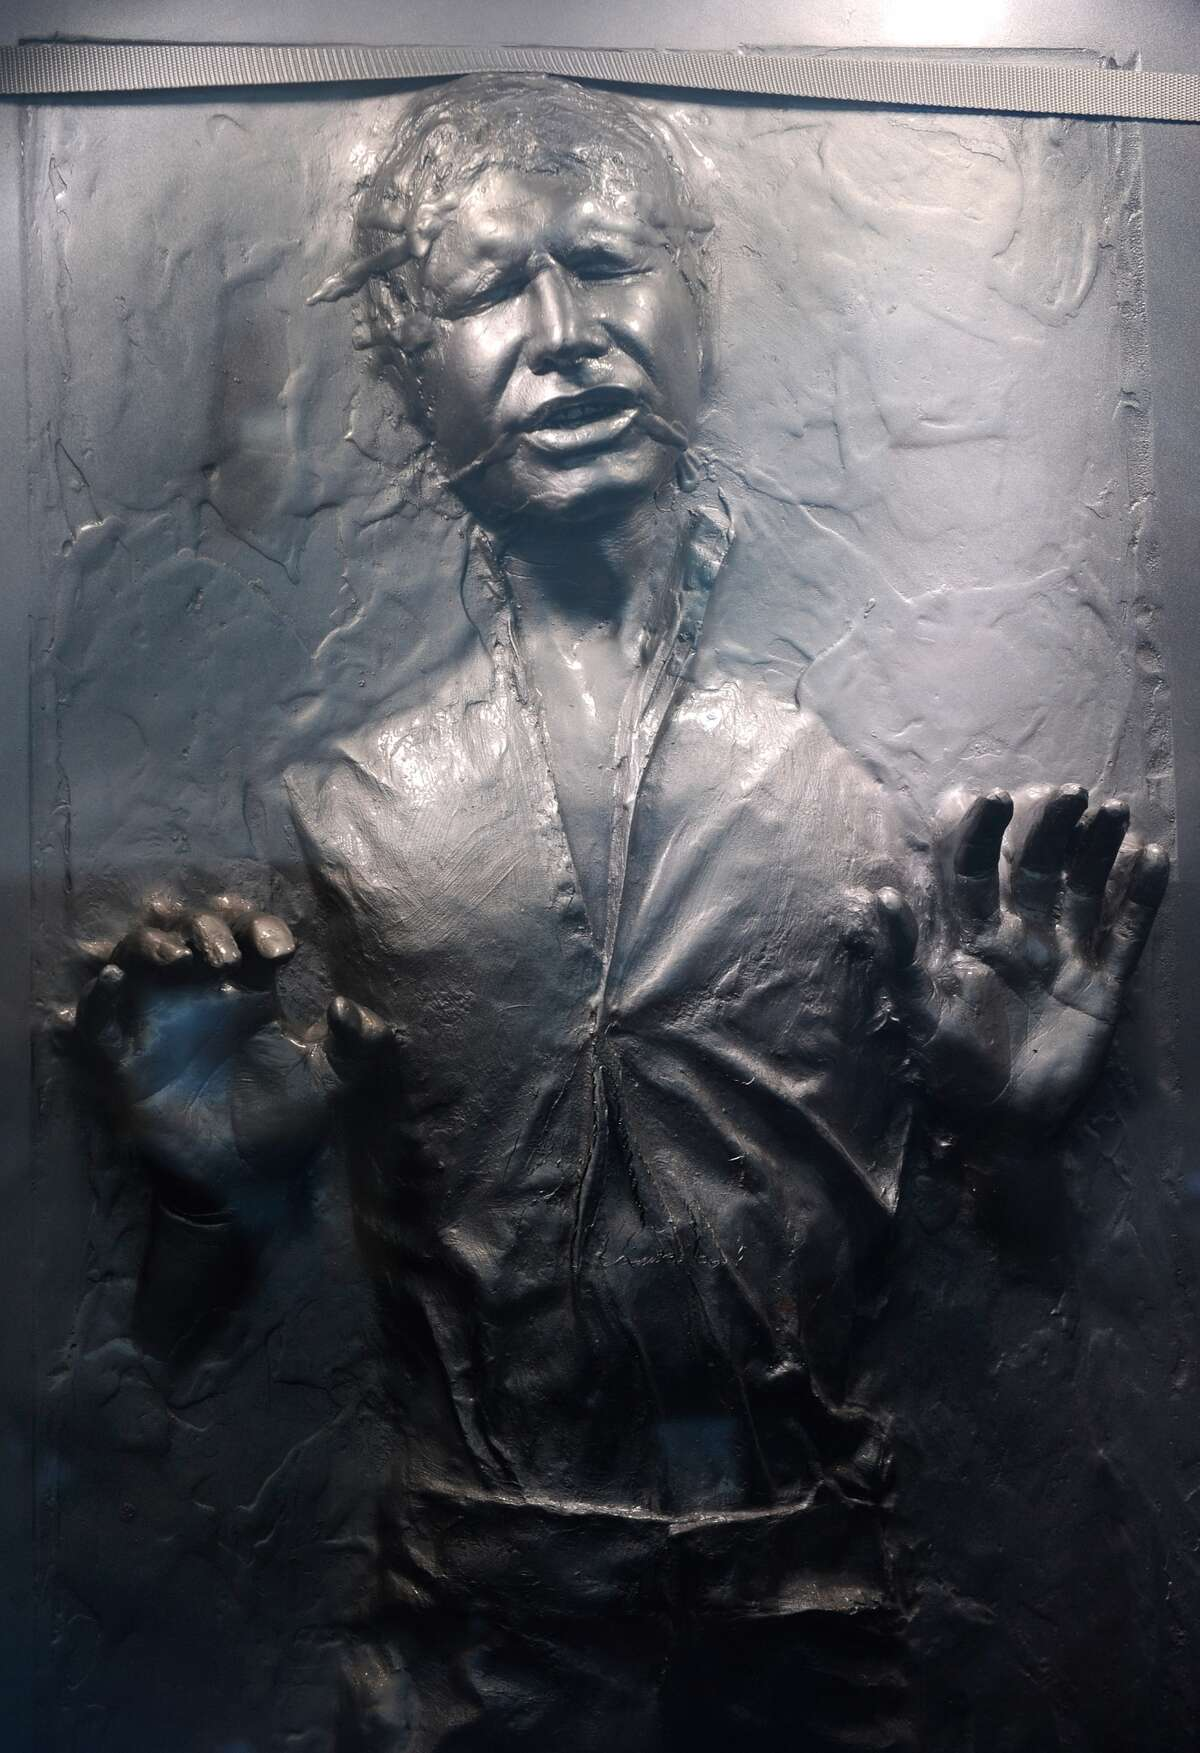 What Han Solo looked like after he was frozen in carbonite in Star Wars: Episode V.